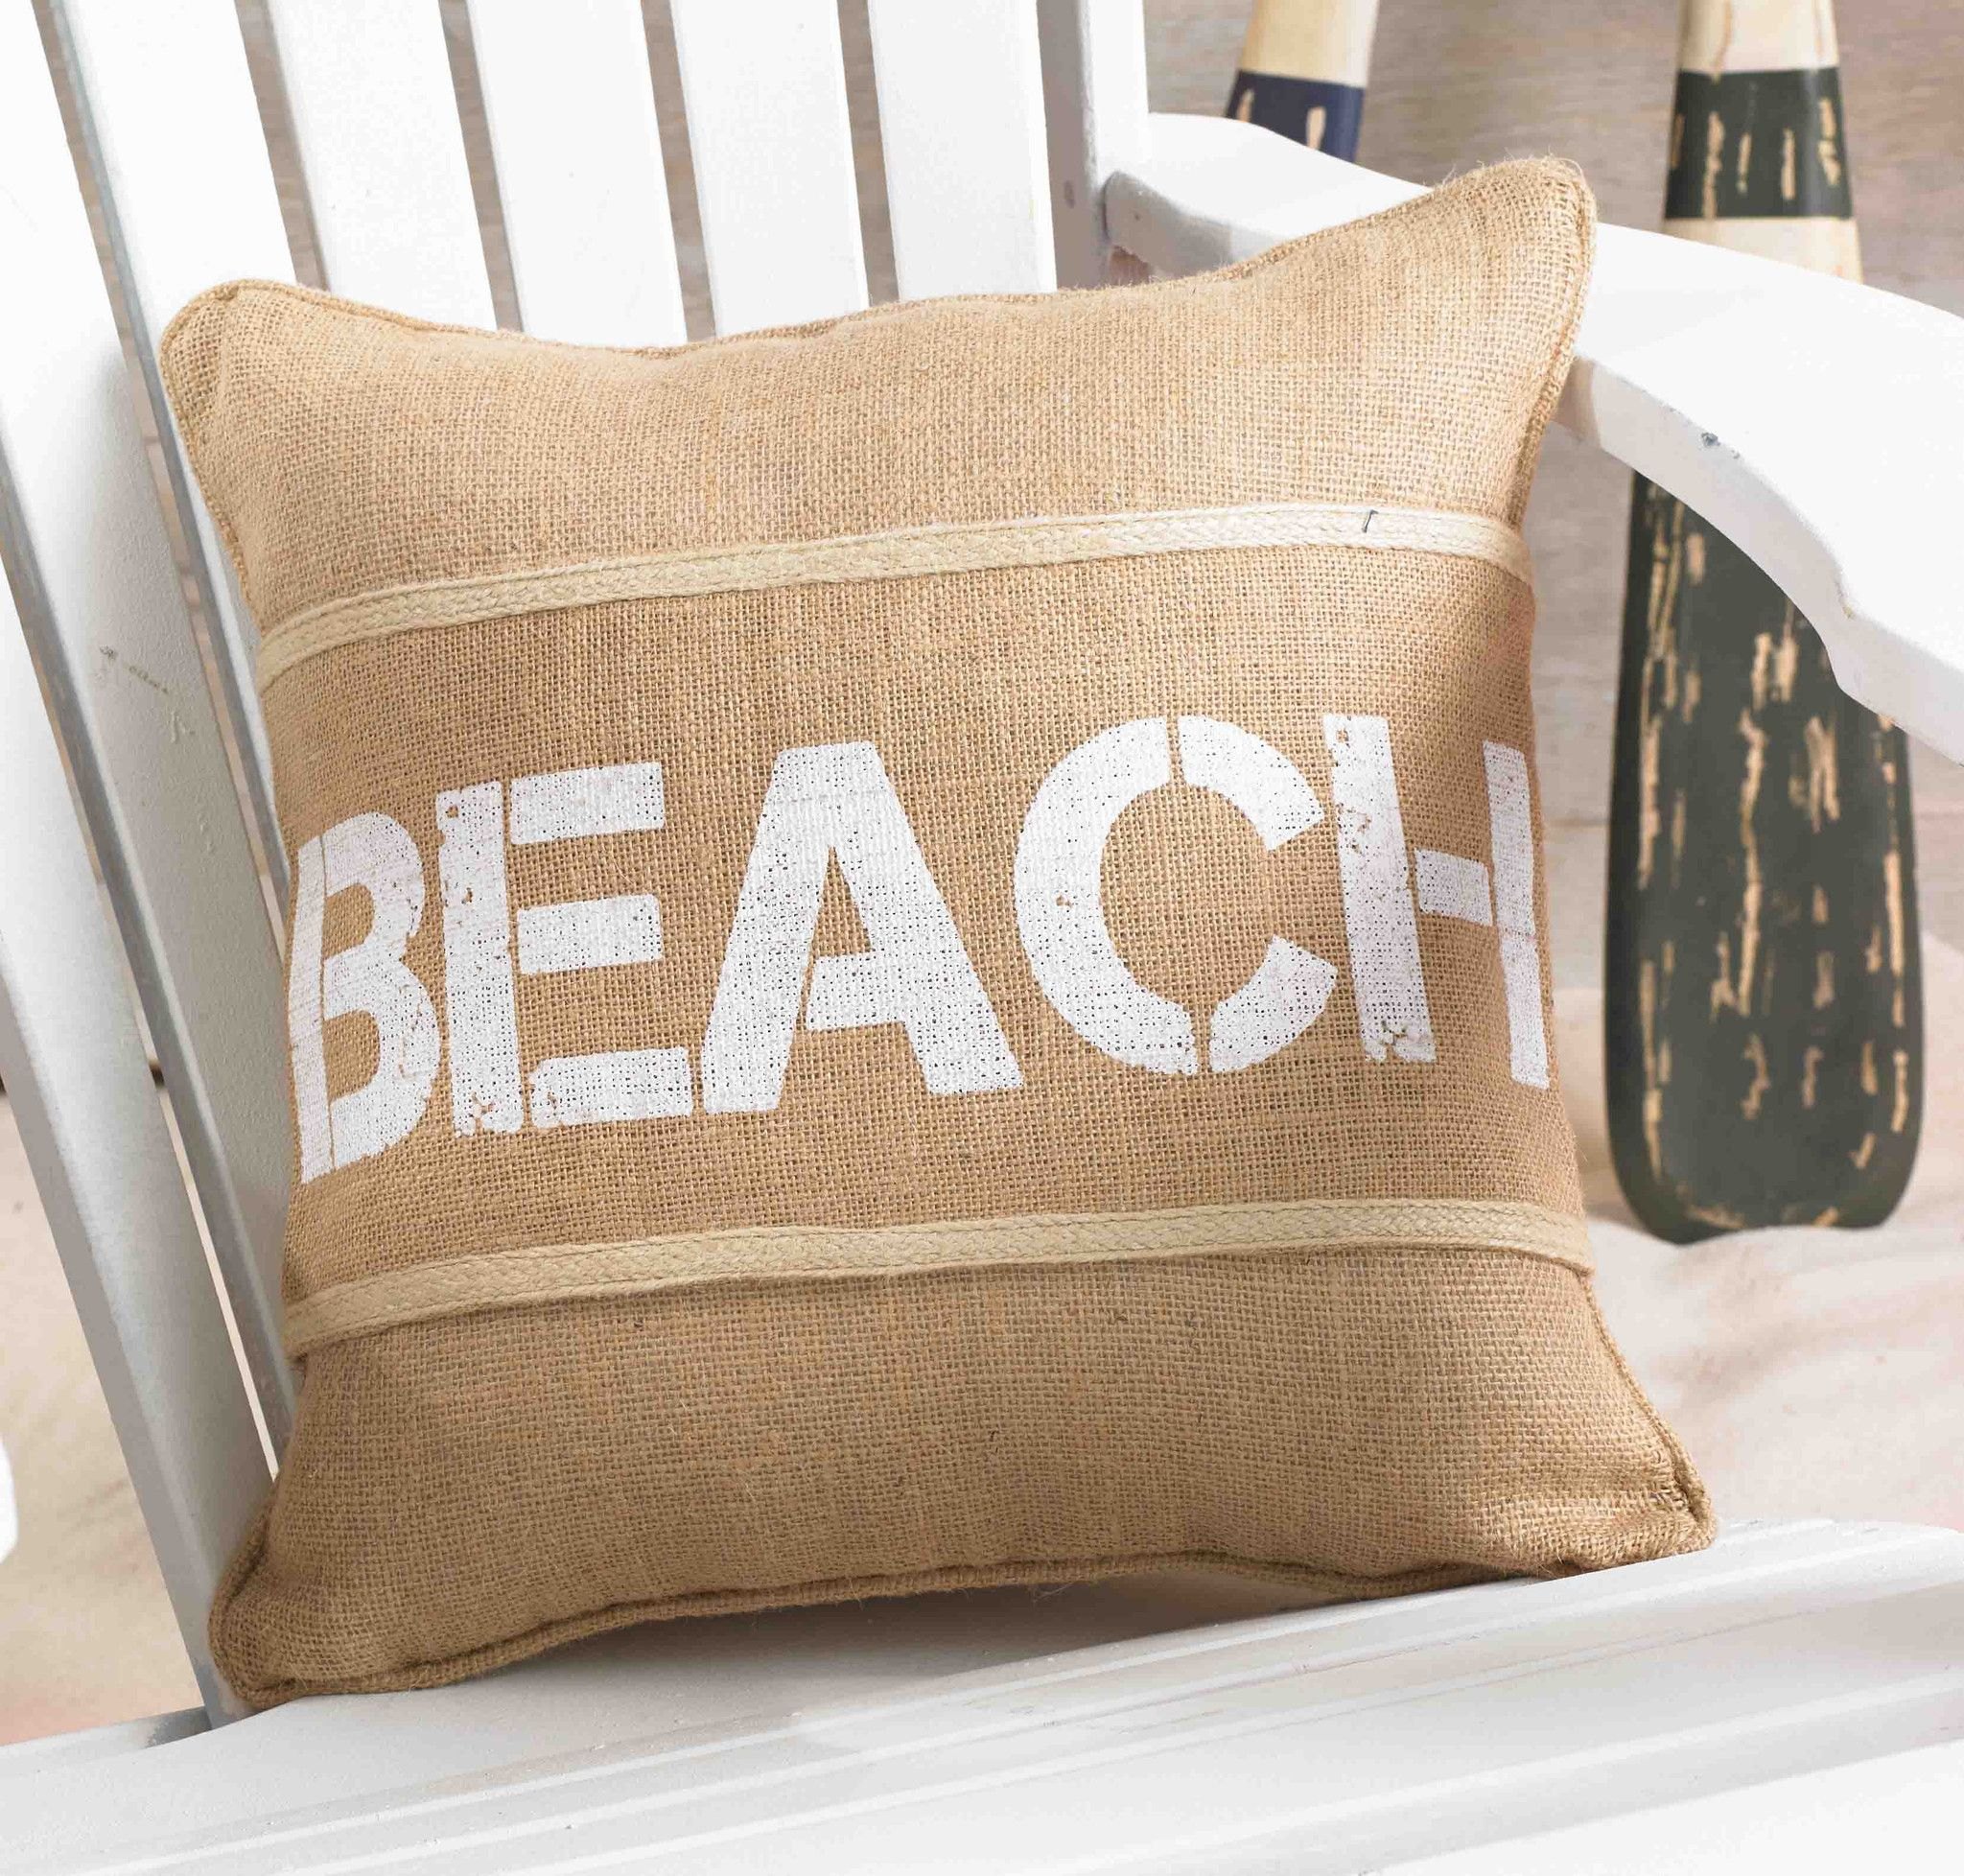 decoration sofa case cushion beach com on buy covers free pillowcase shipping get decorative w summer wholesale landscape home cover pillows sea aliexpress throw and pillow